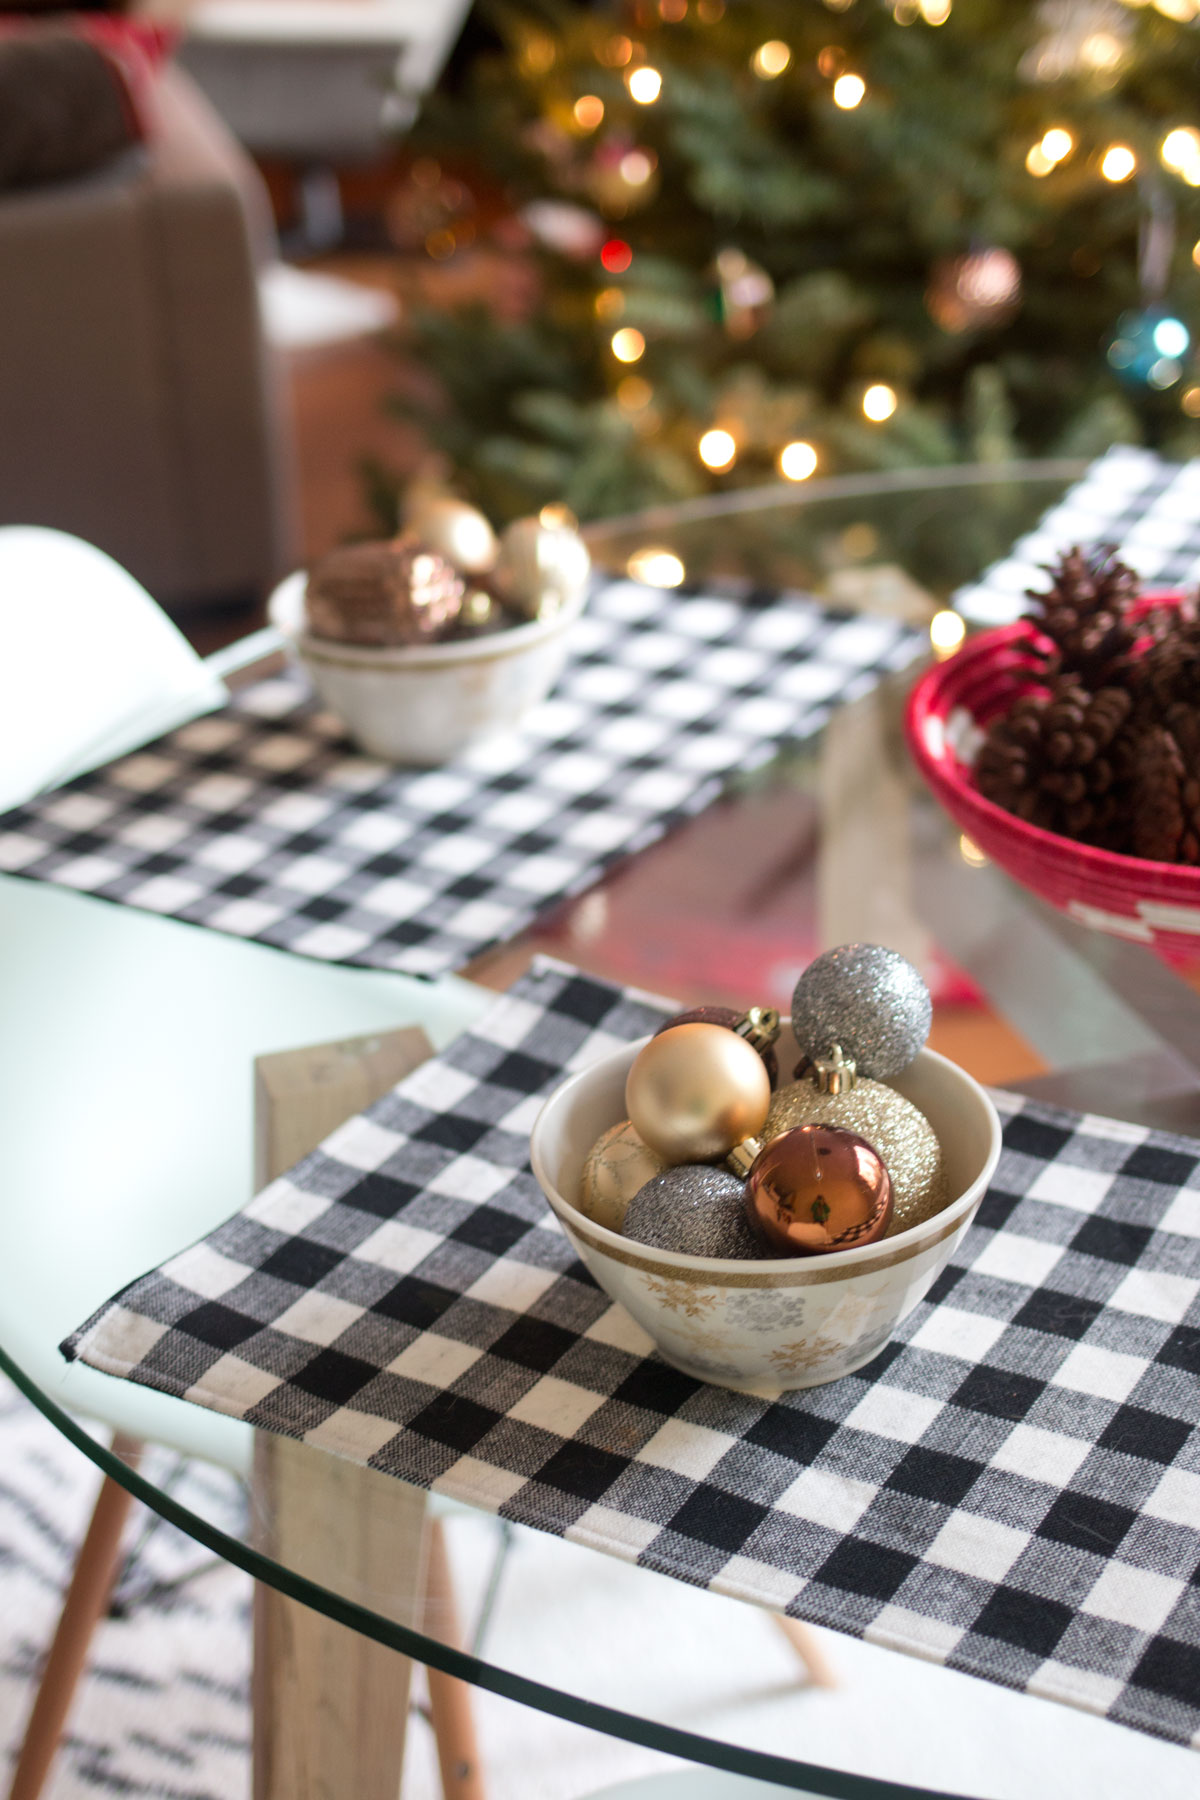 Christmas Modern Table Decor // hellorigby seattle lifestyle & home decor blog